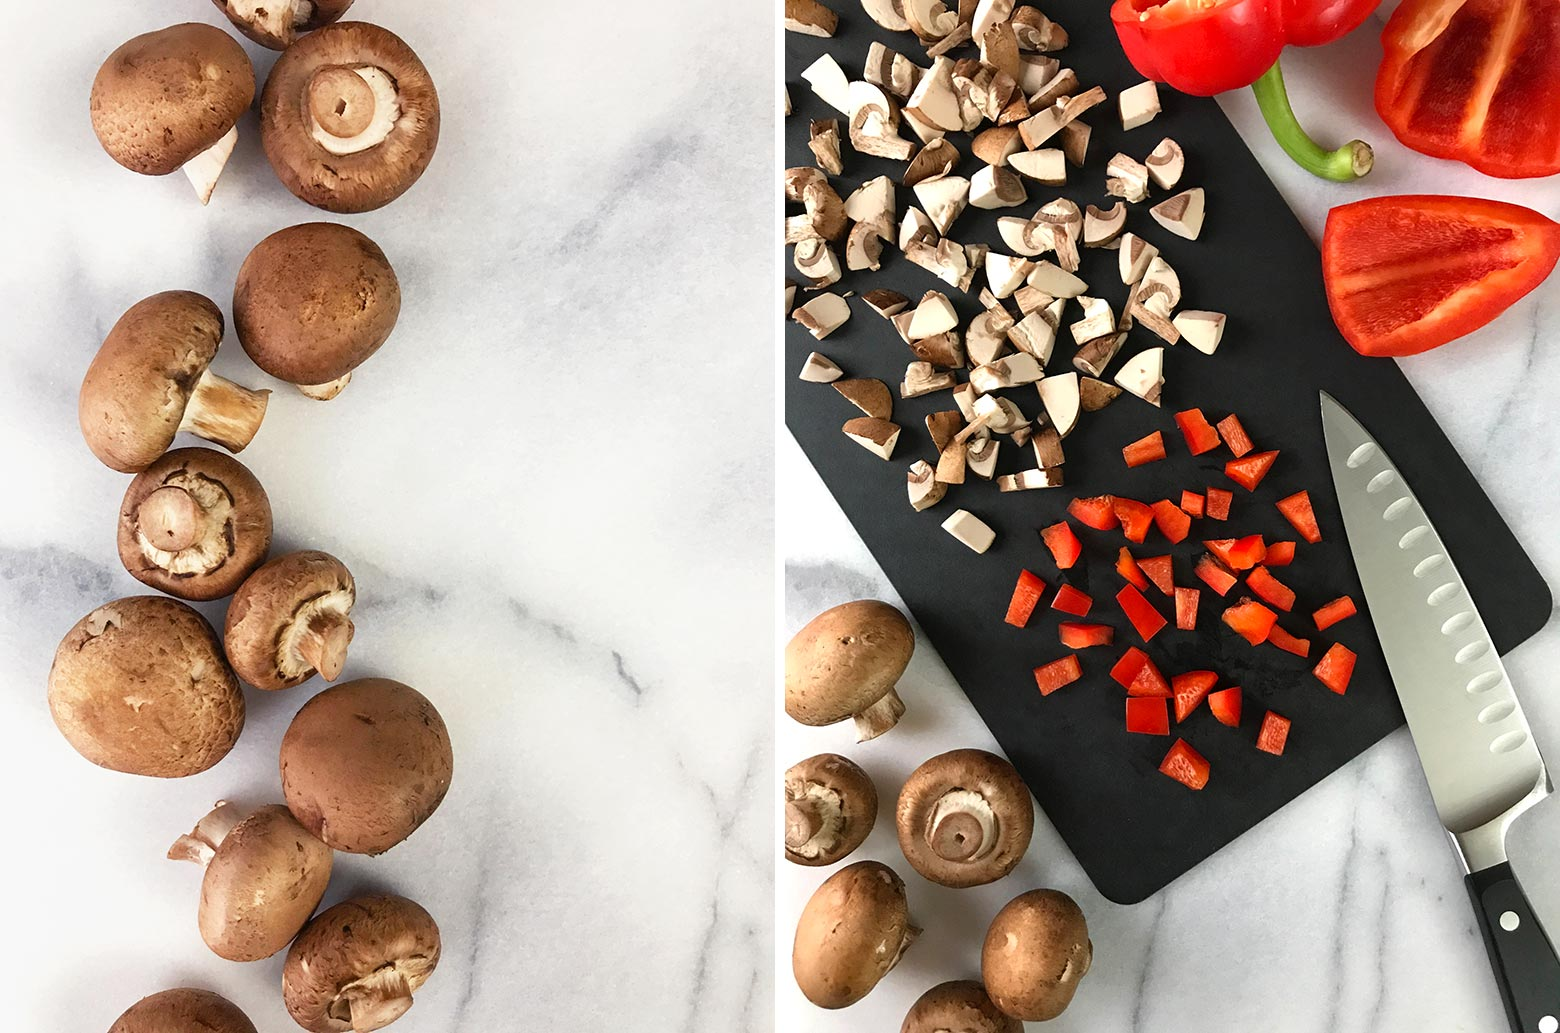 Left photo: Close-up of cremini mushrooms. Right photo: Chopped mushrooms and red bell pepper on a black cutting board.